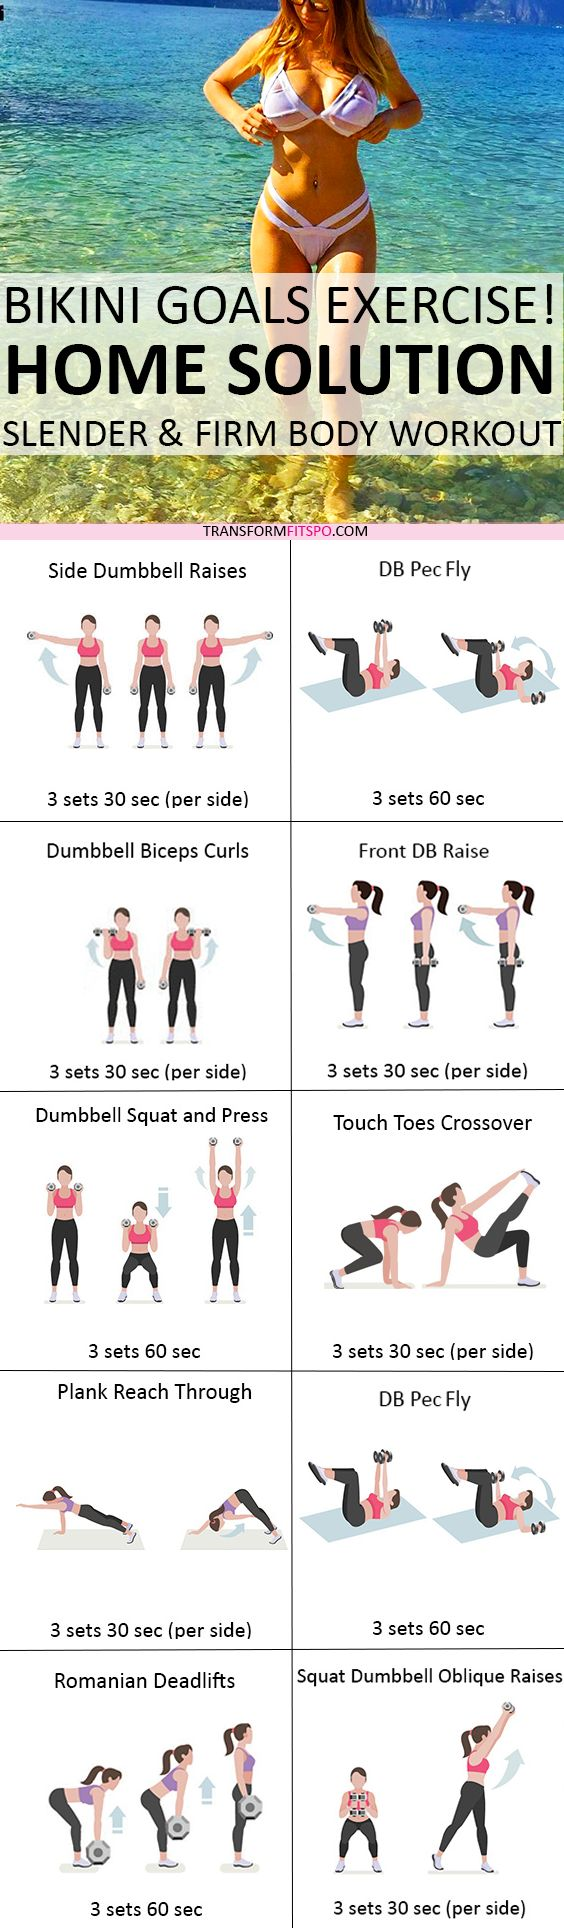 Repin and share if this workout was amazing! Read the post for all the info!